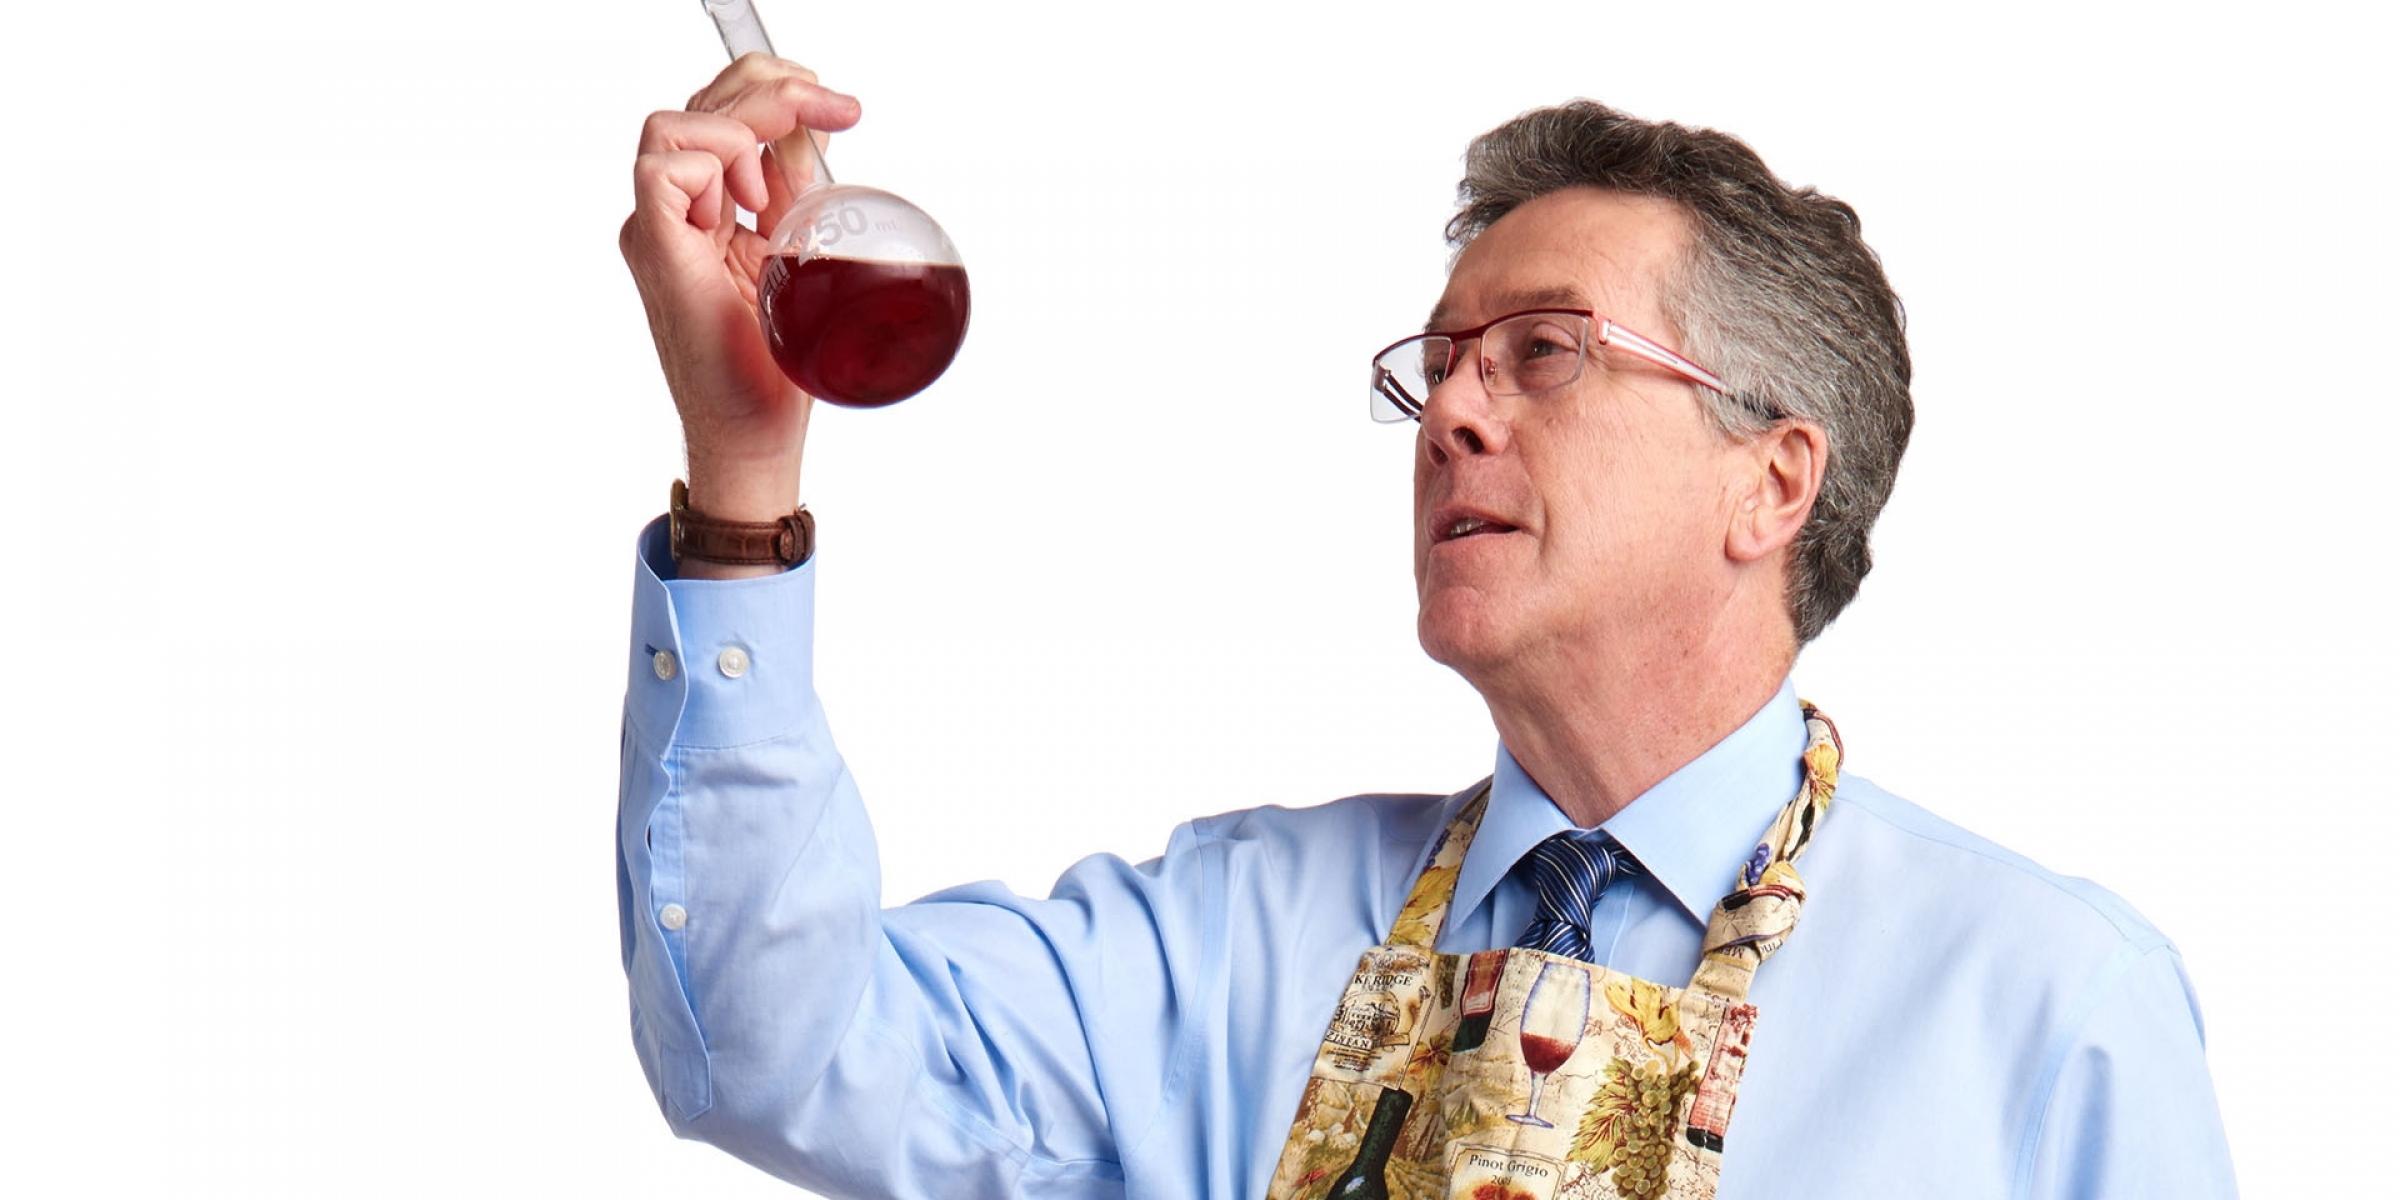 Scientist and Wine Distiller